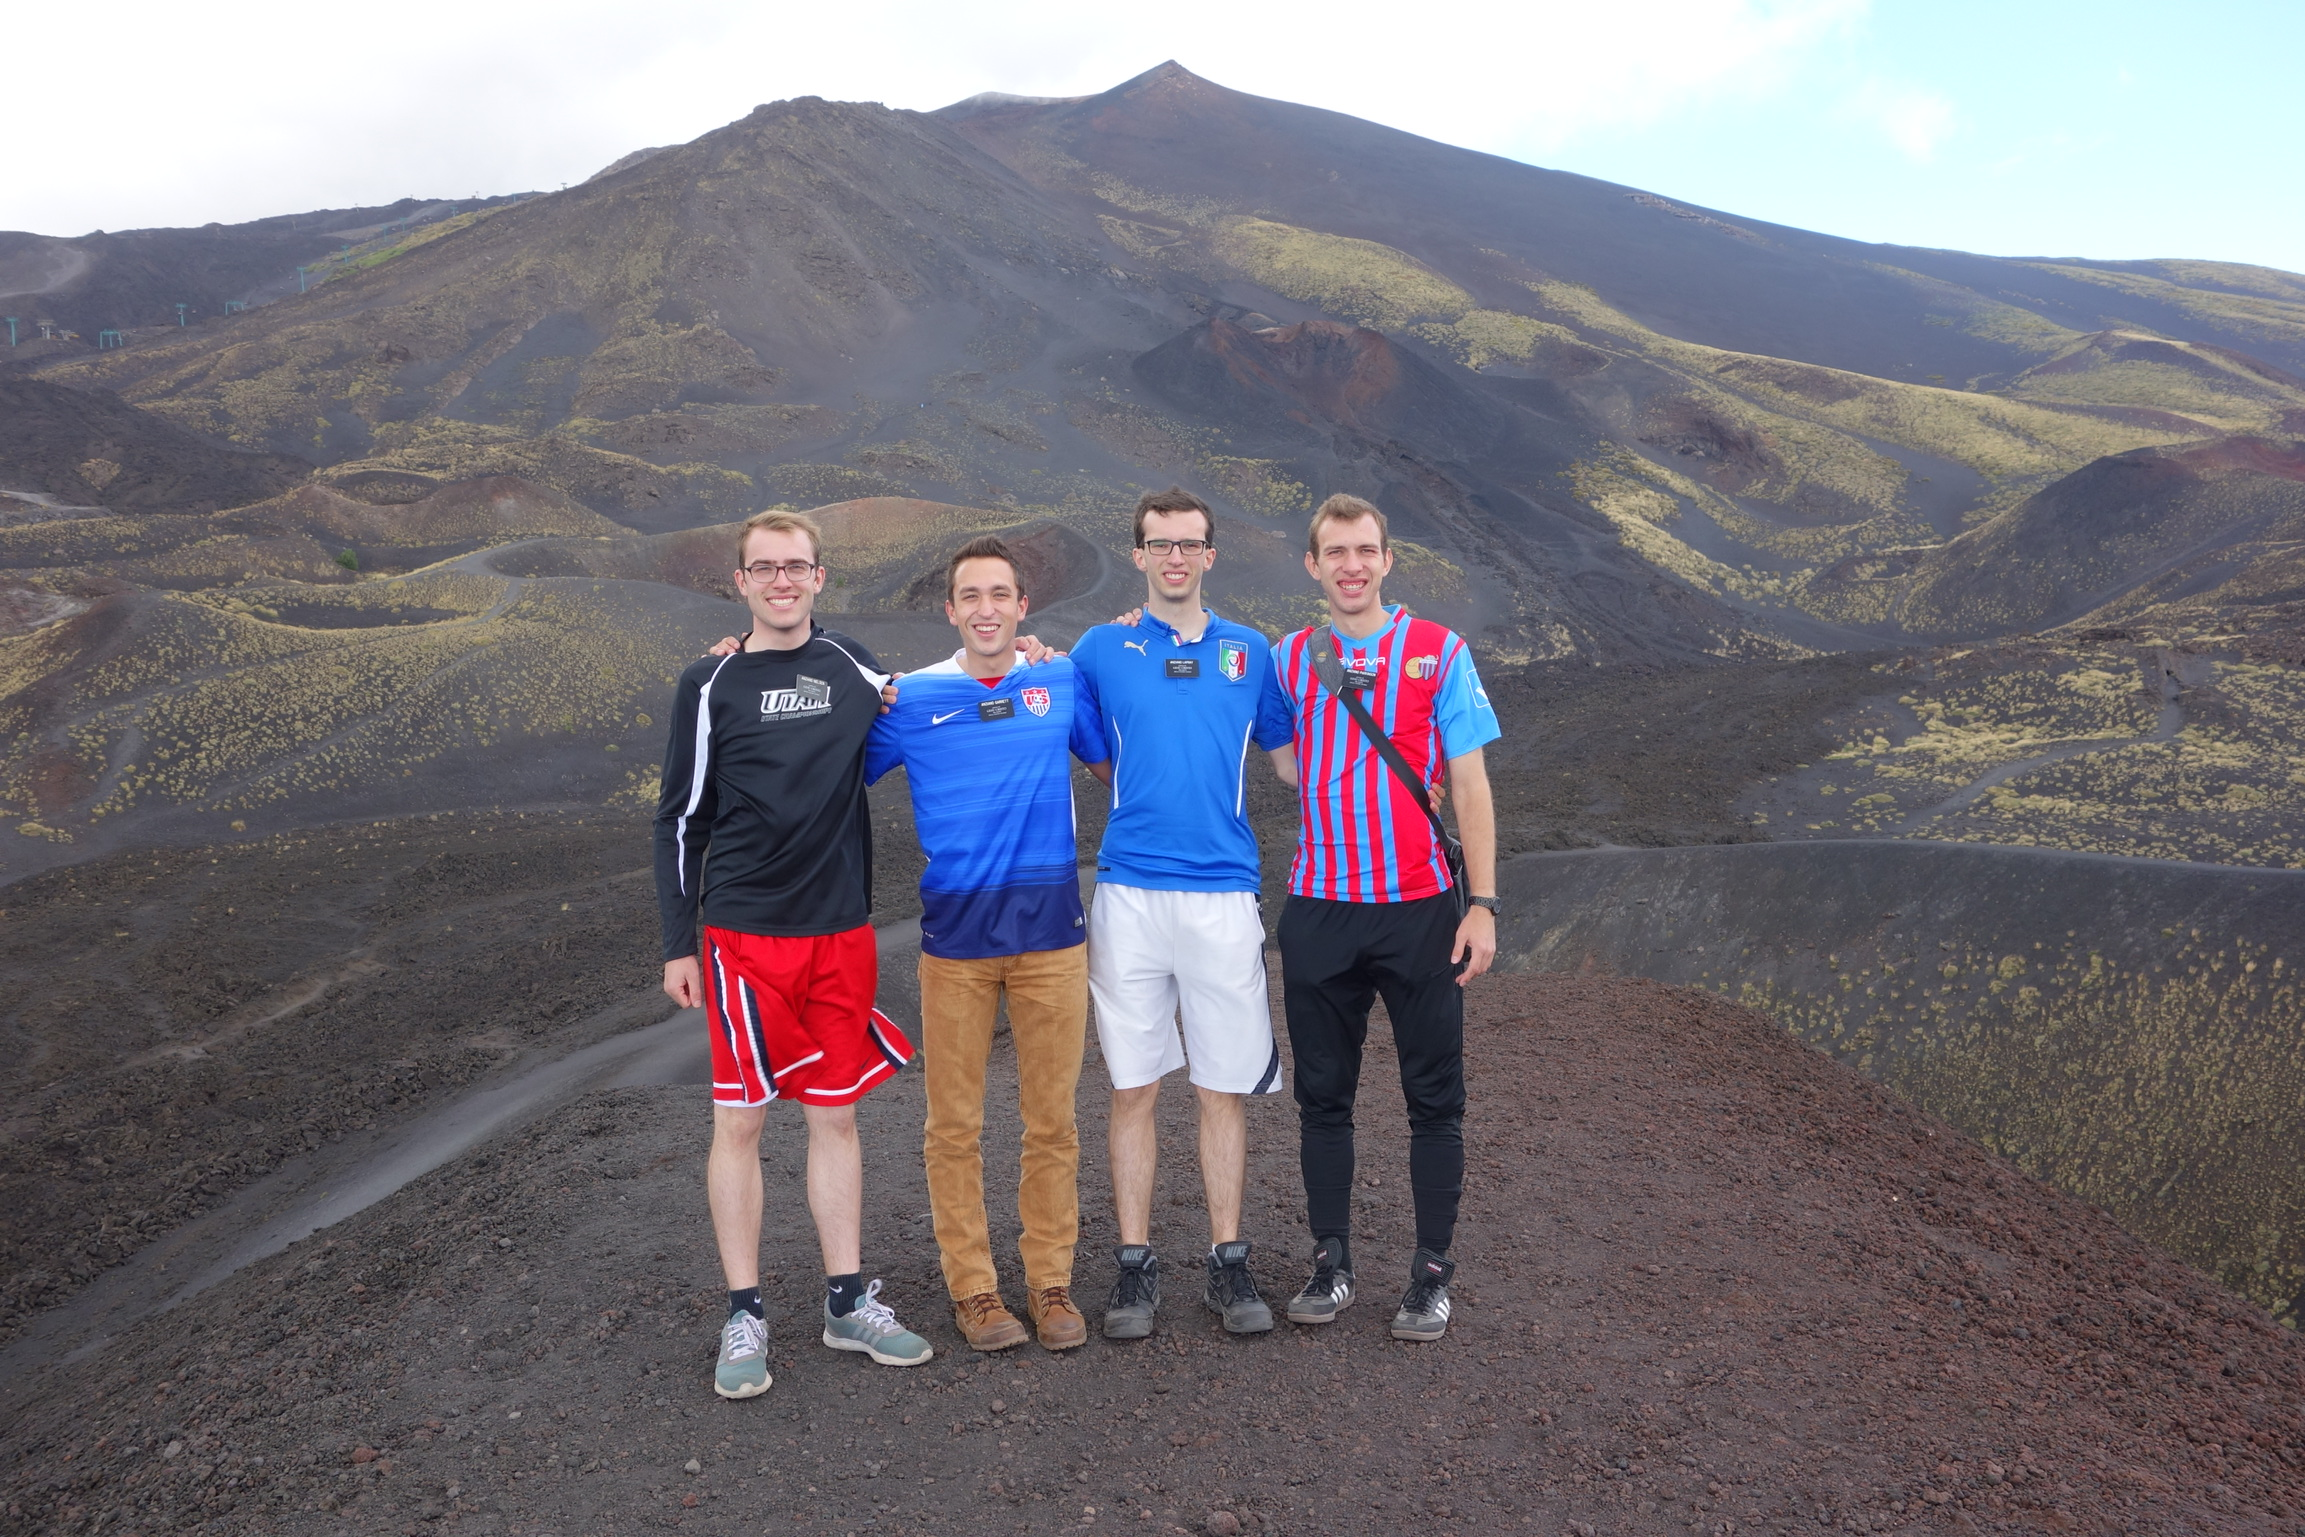 On Mt. Etna